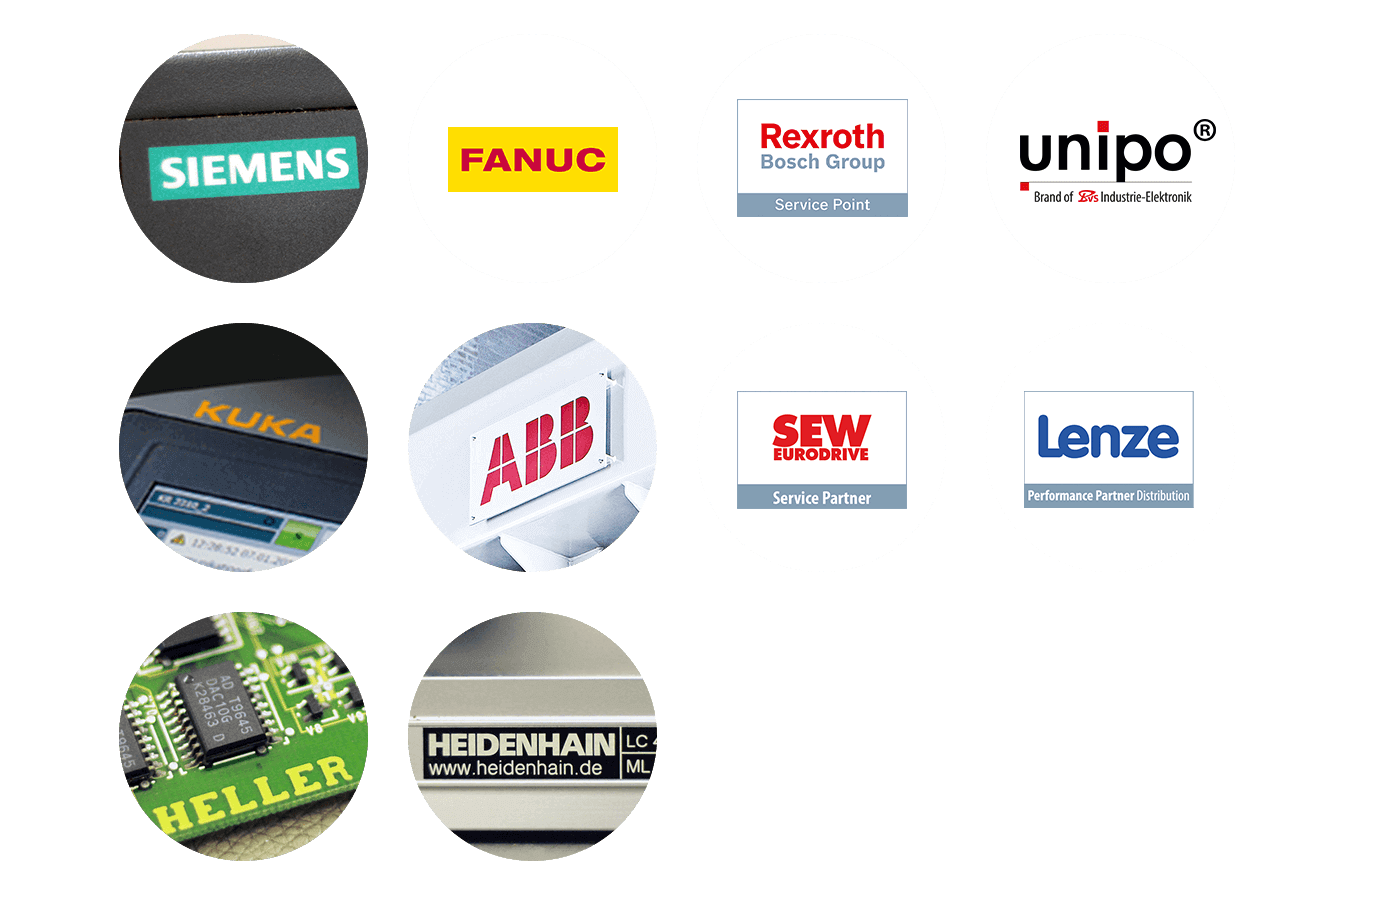 Overview of the manufacturer portfolio – BVS Industrie-Elektronik